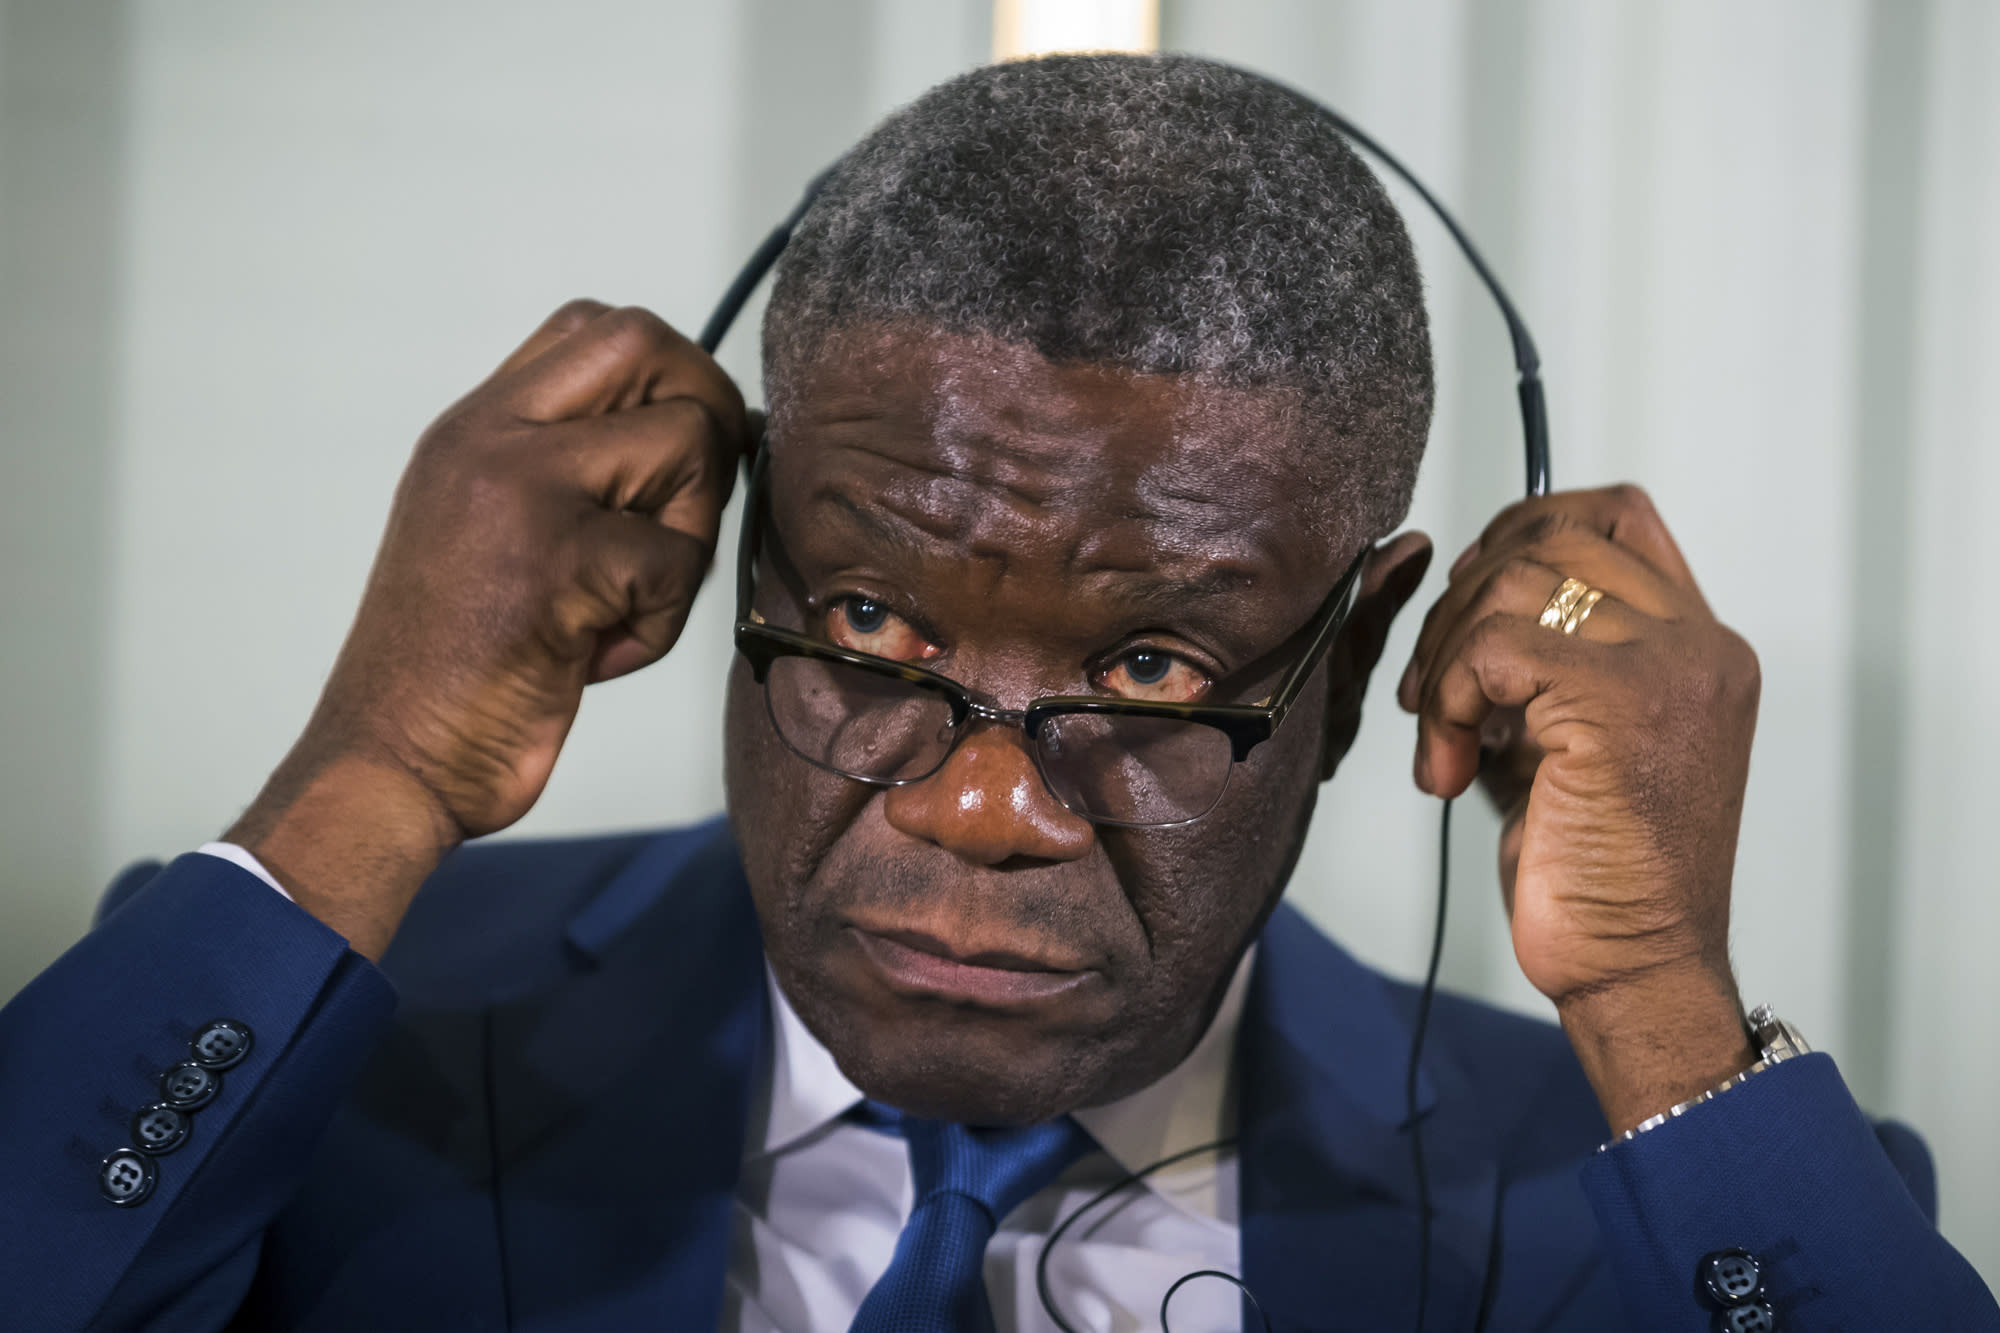 FILE - In this Sunday Dec. 9, 2018 file photo, Dr. Denis Mukwege from Congo prepares to listen to questions, with Nadia Murad from Iraq, at a media conference for the 2018 Nobel Laureates at the Nobel Institute in Oslo, Norway. Death threats against the Nobel Peace Prize-winning Congolese doctor have alarmed his supporters who are urging in Sept. 2020 the United Nations to reinstate protection by its peacekeepers, but it likely won't return. (Heiko Junge/NTB Scanpix via AP, File)